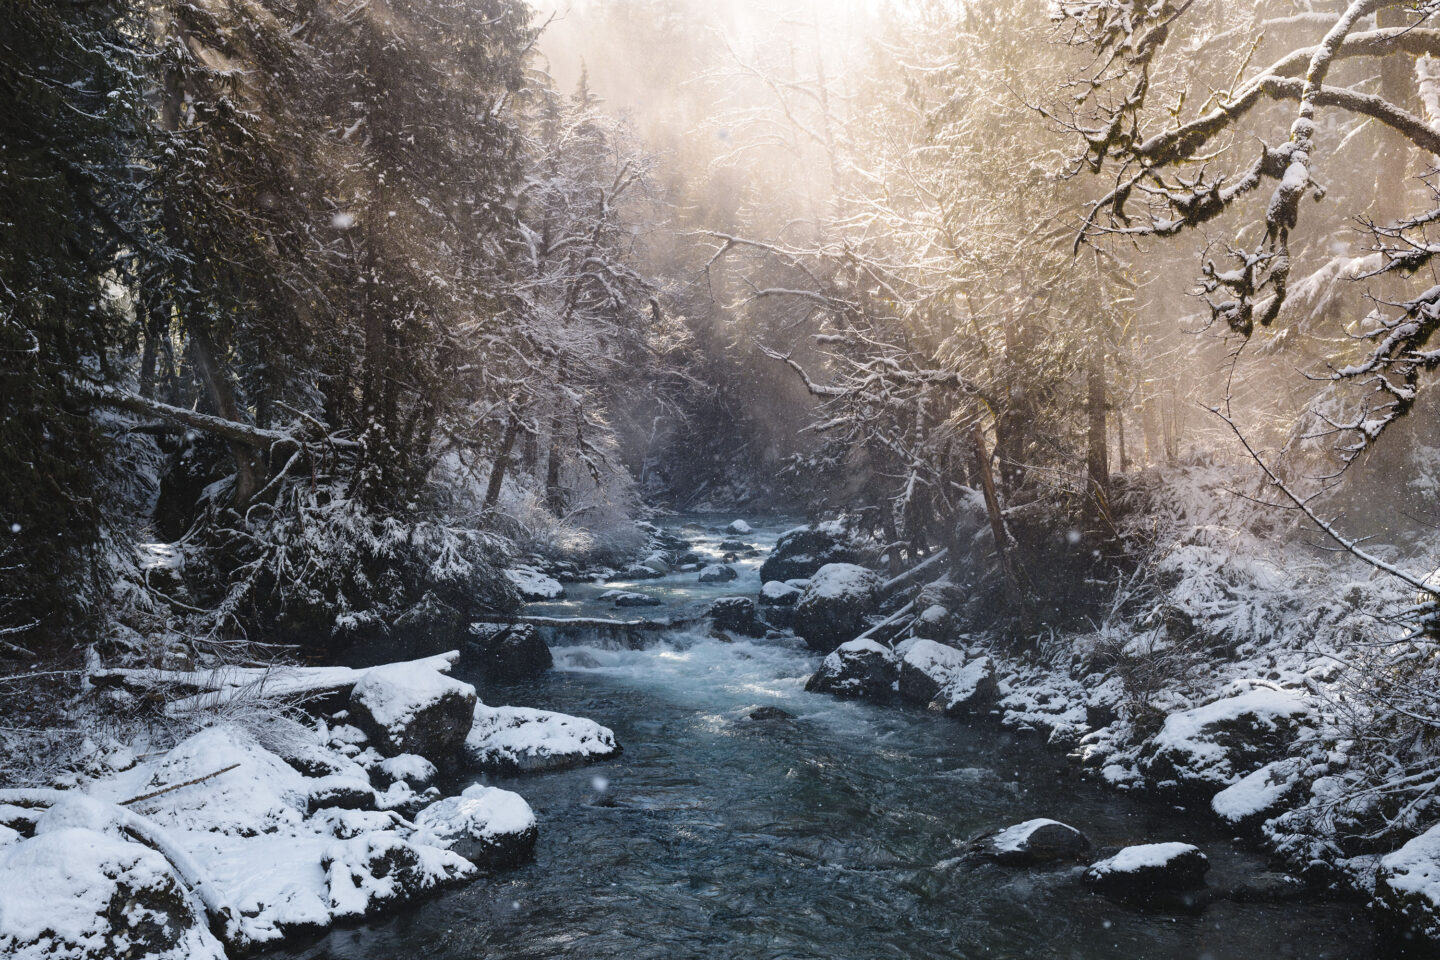 A snowy scene along a river near Chilliwack.